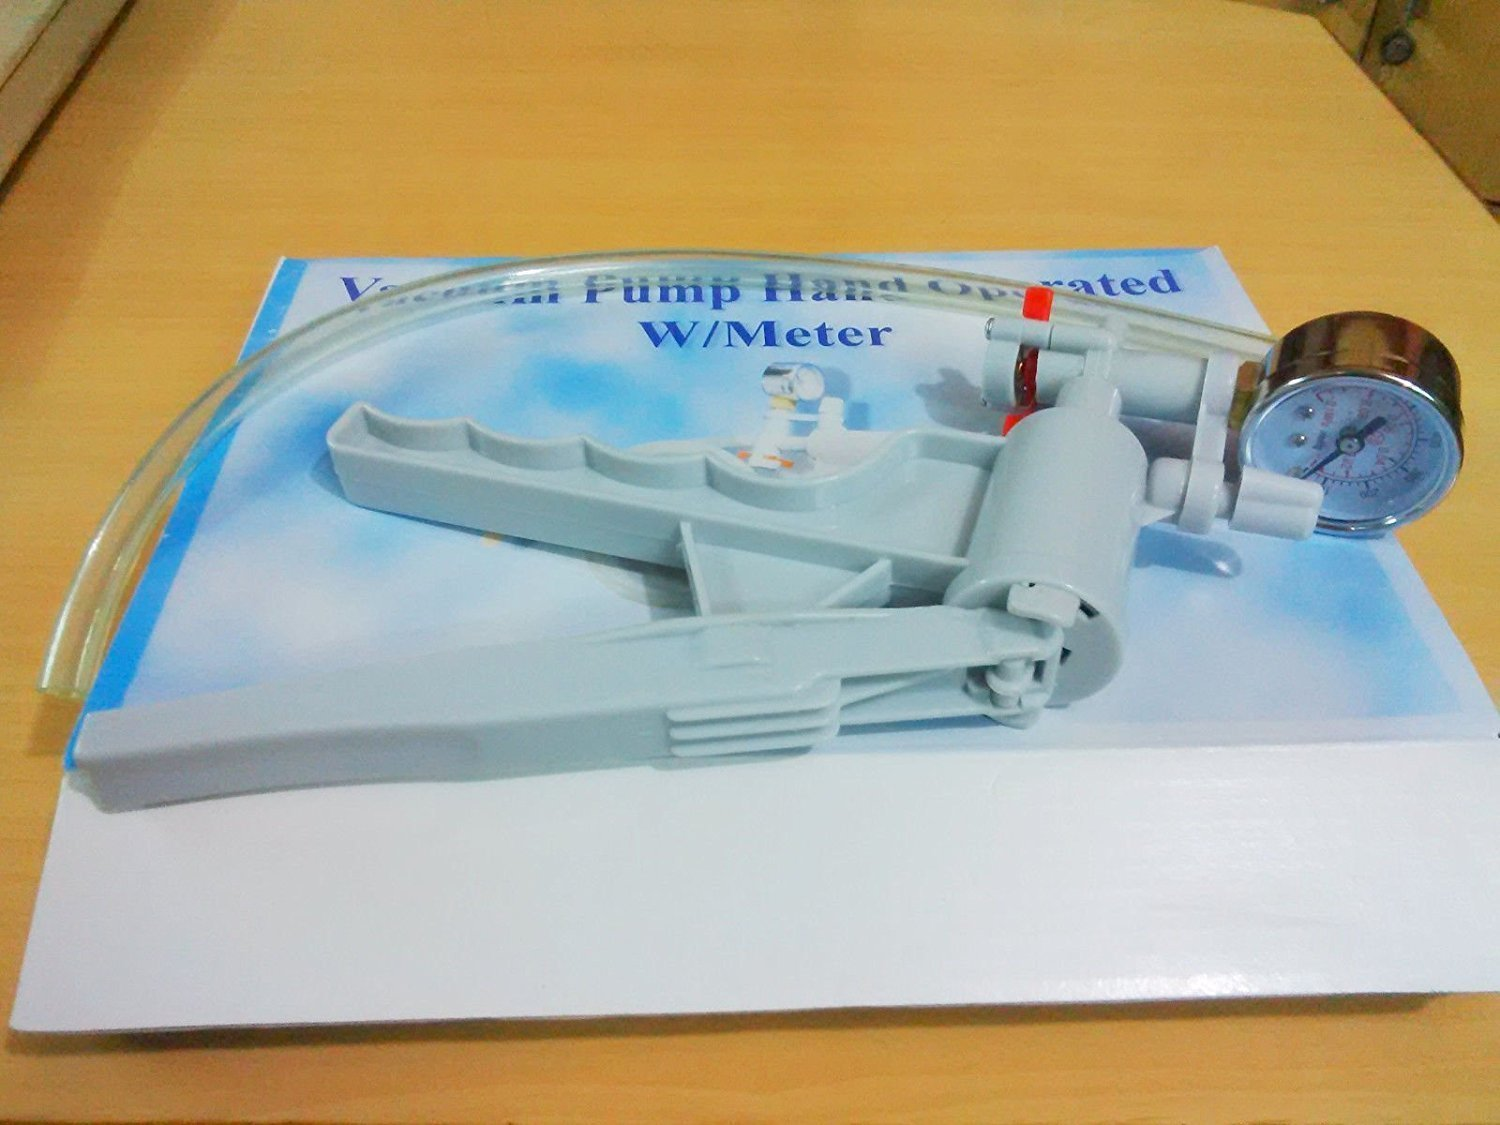 Pump Hand-held Vacuum Pressure Pump W/Meter in Top Quality